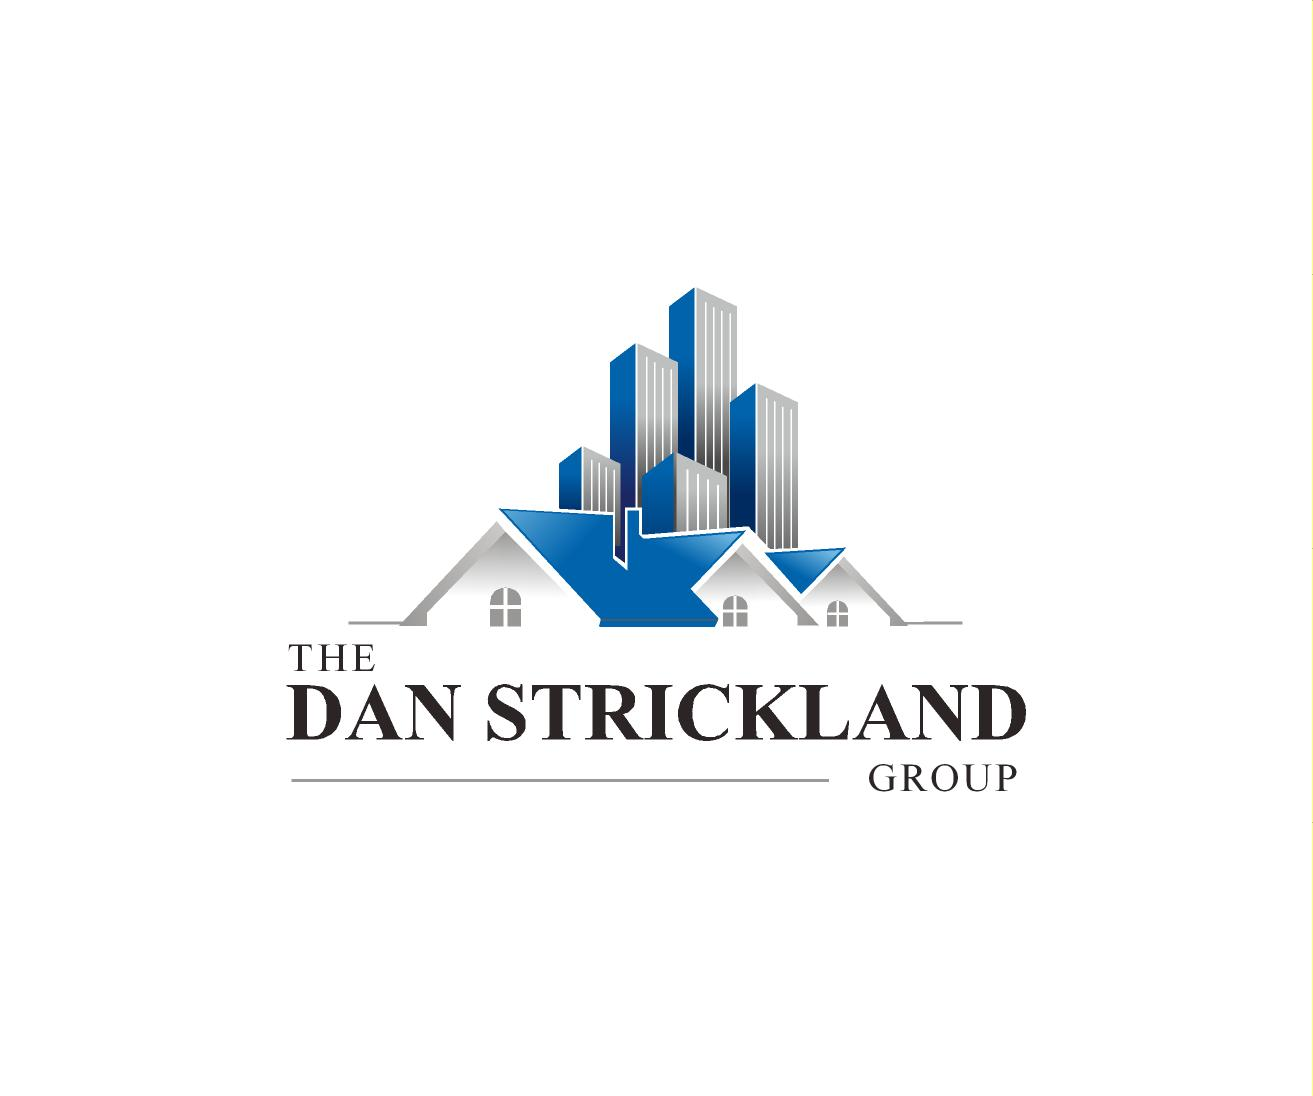 Logo Design by ZAYYADI AHMAD - Entry No. 378 in the Logo Design Contest Creative Logo Design for The Dan Strickland Group.